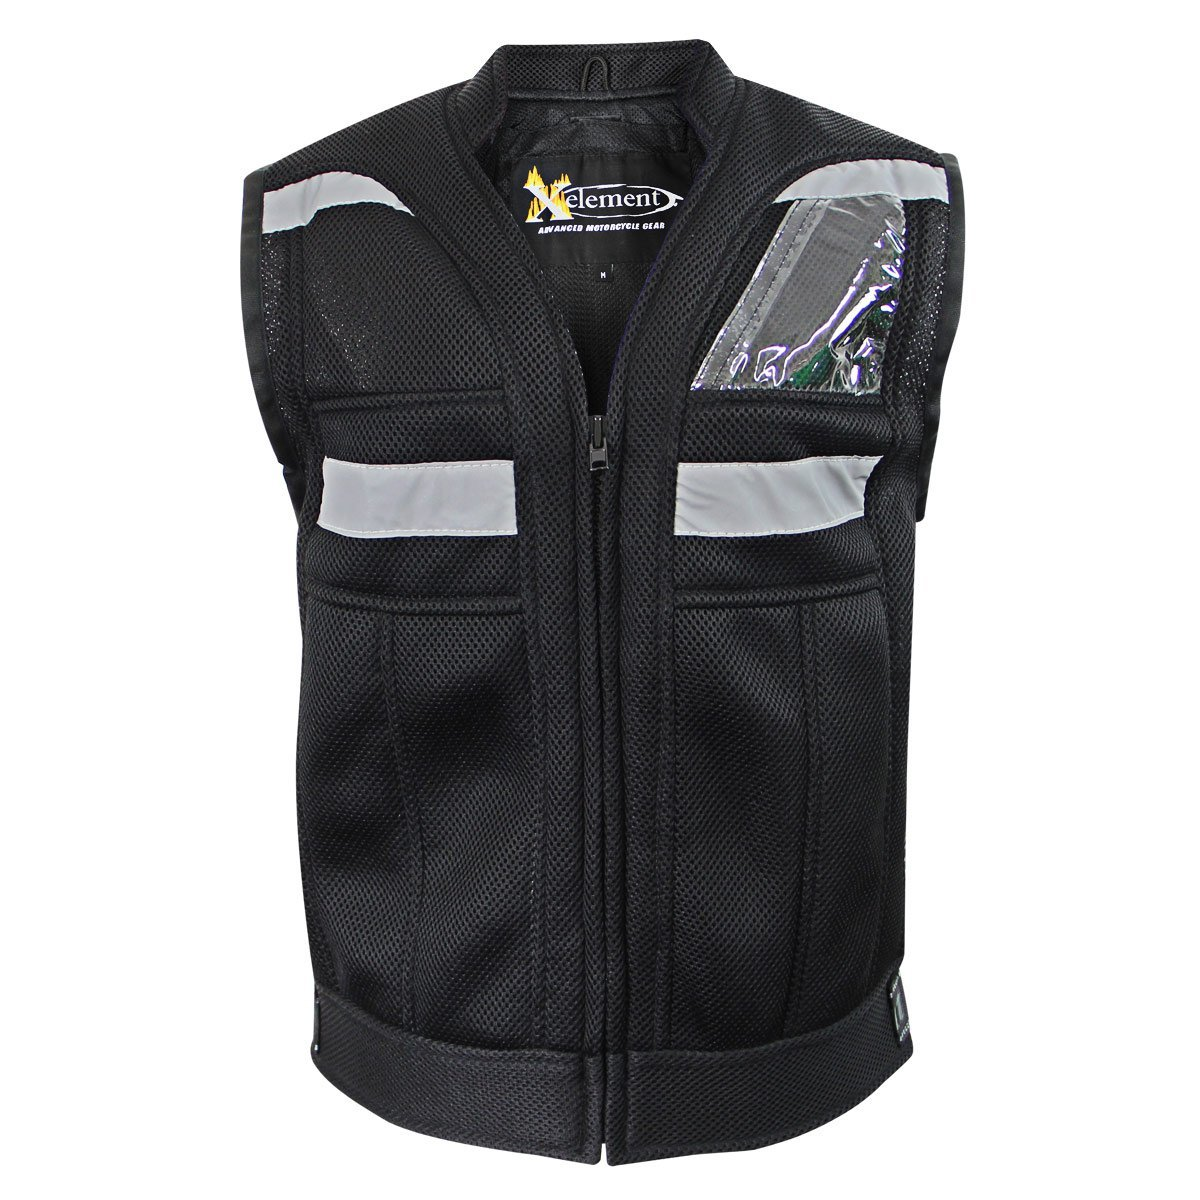 NEW-xelement Vest for Sale